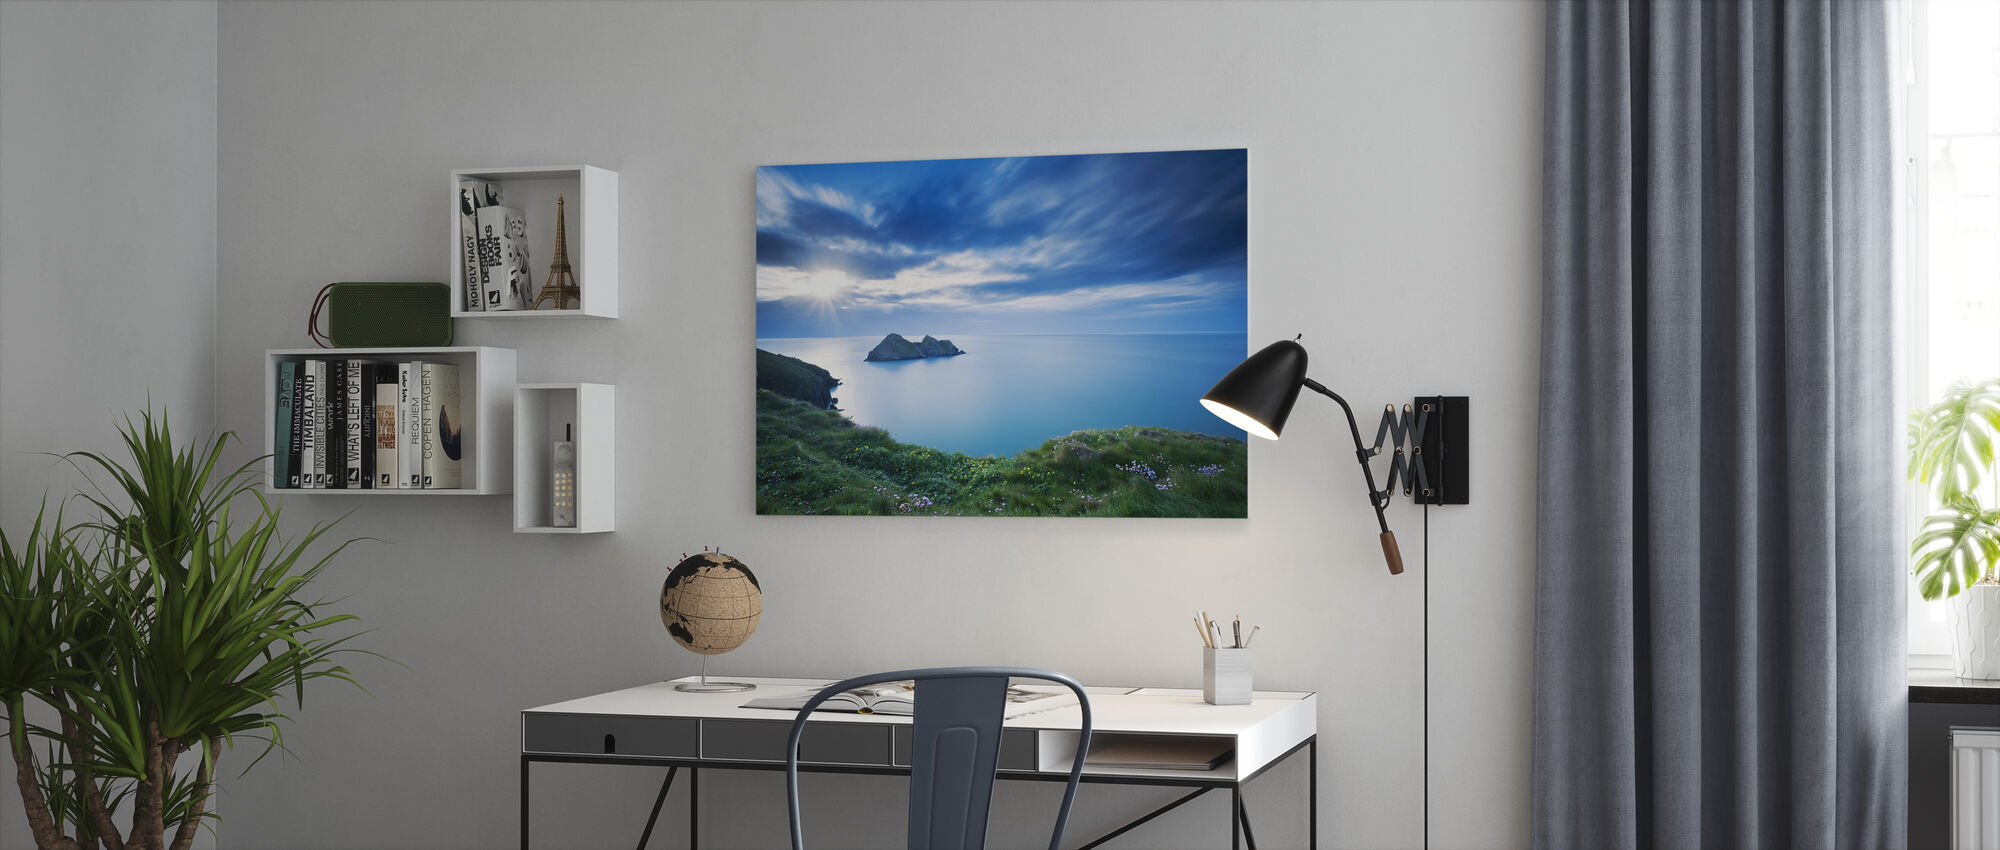 Symphony in Blue - Canvas print - Office